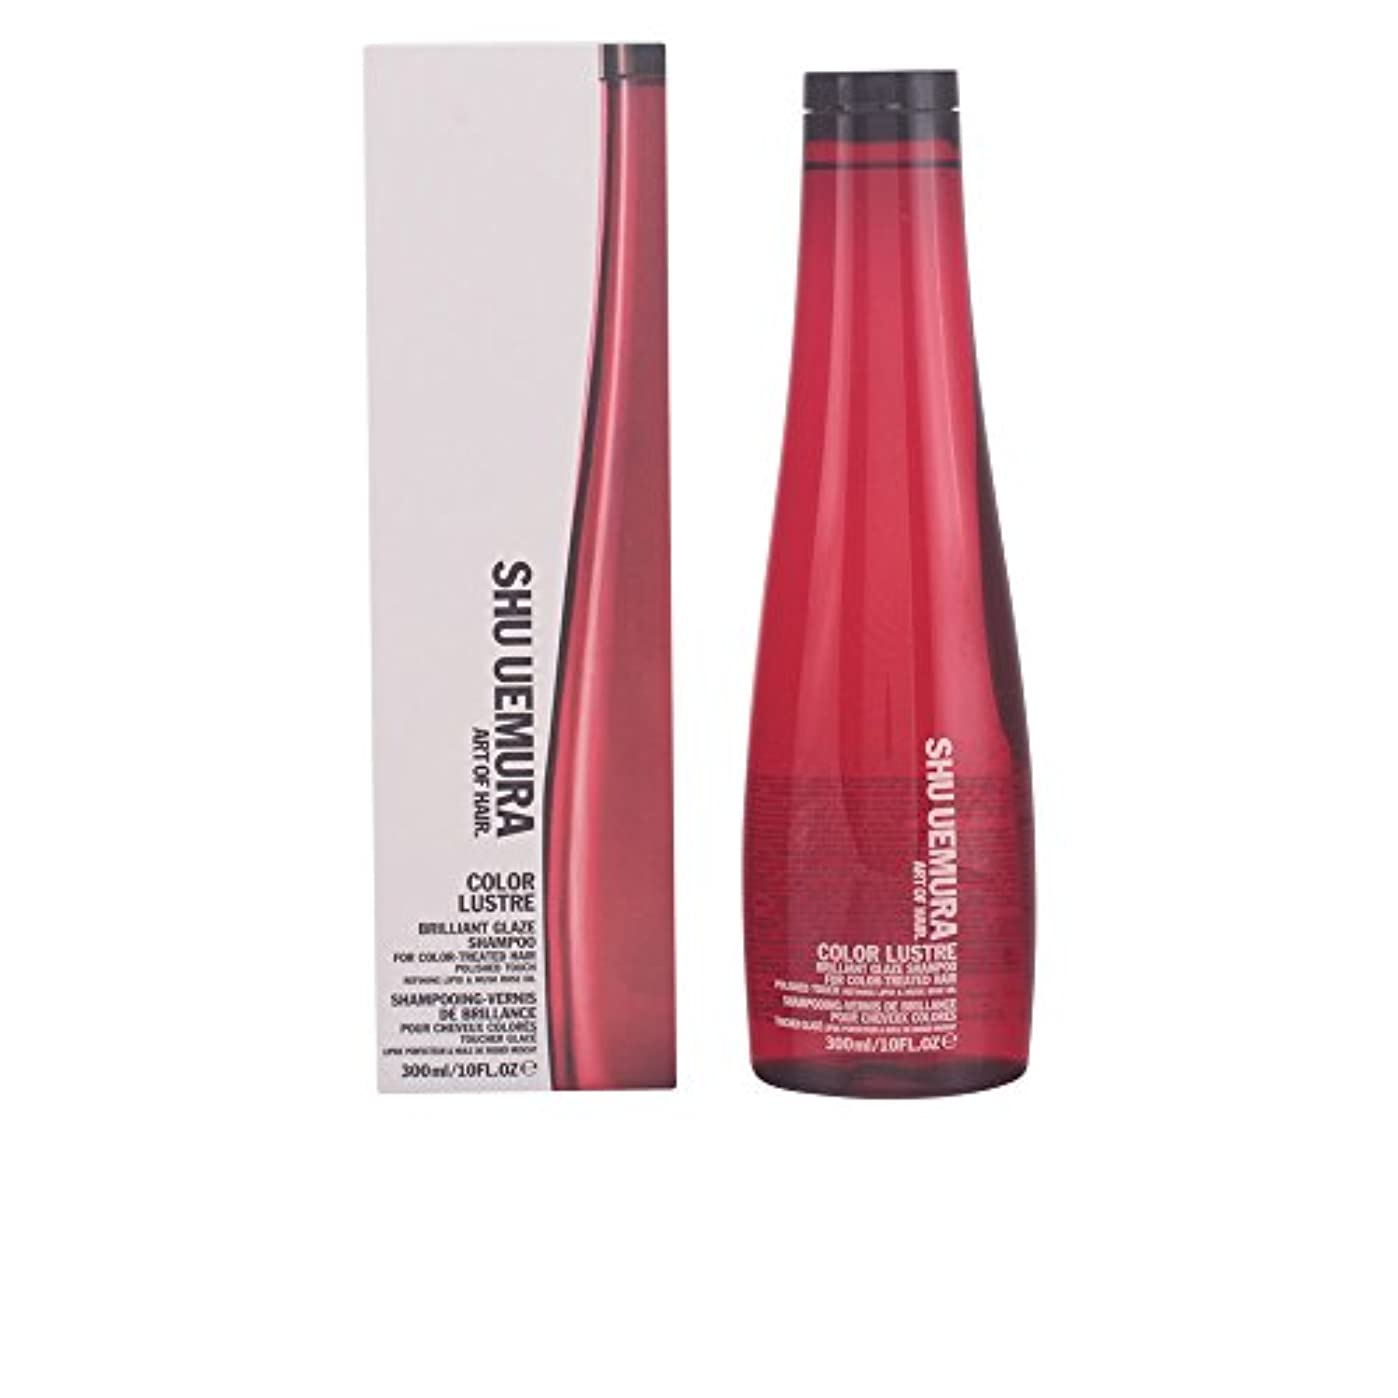 独立した他の場所汚いColor Lustre Sulfate-Free Brilliant Glaze Shampoo (For Color-Treated Hair)[並行輸入品]